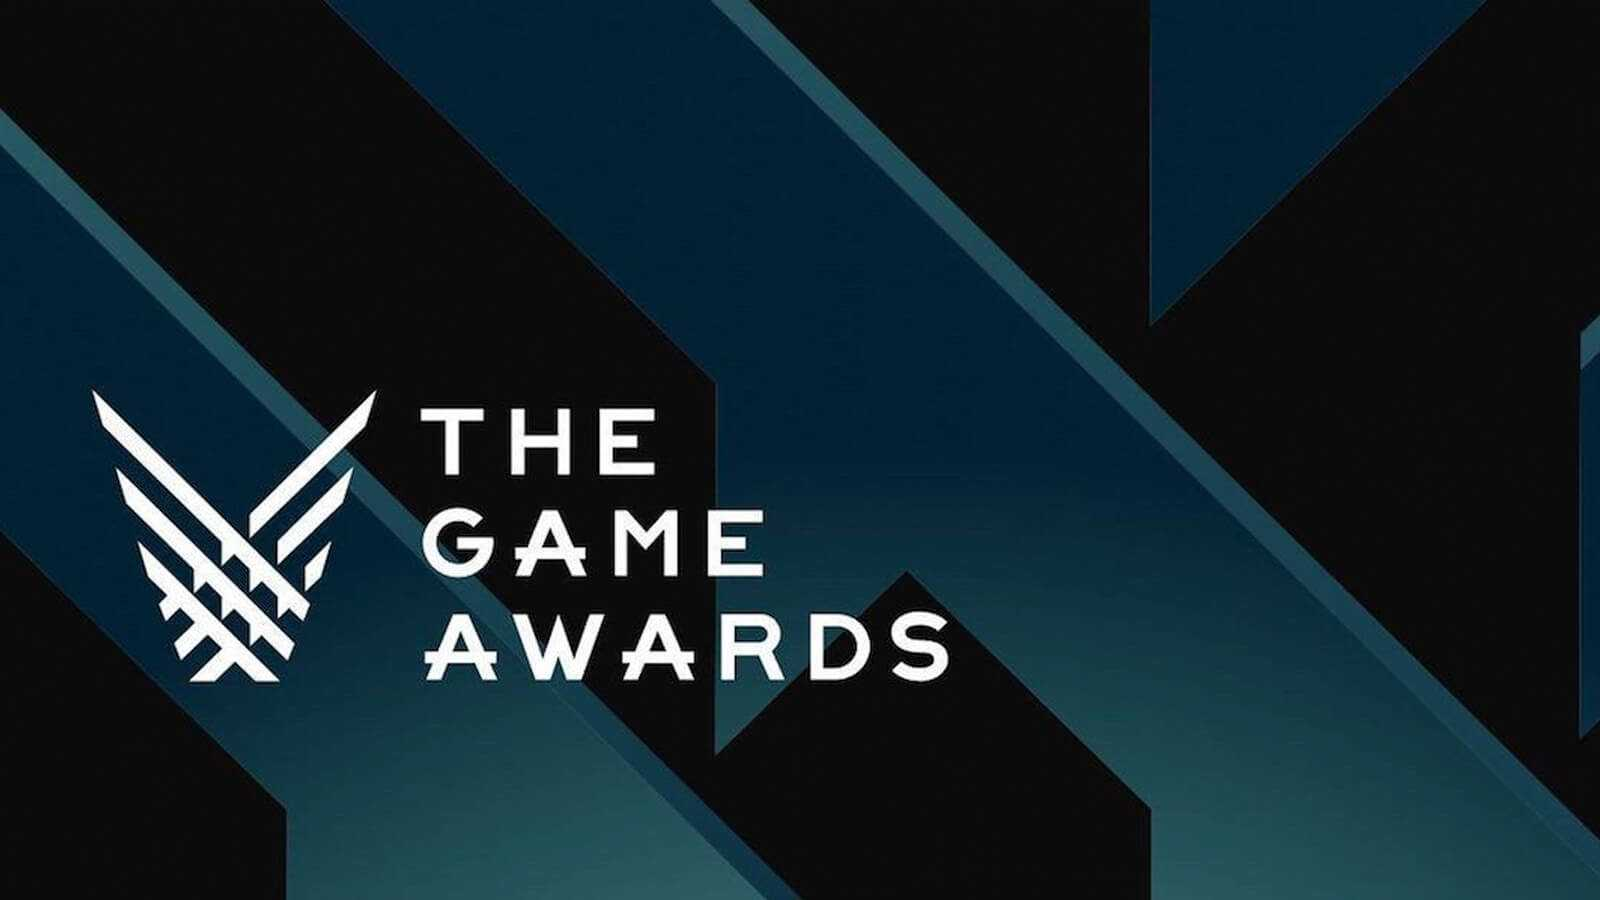 The Game Awards 2018: Full Sail Grads on Winning and Nominated Games - Hero image